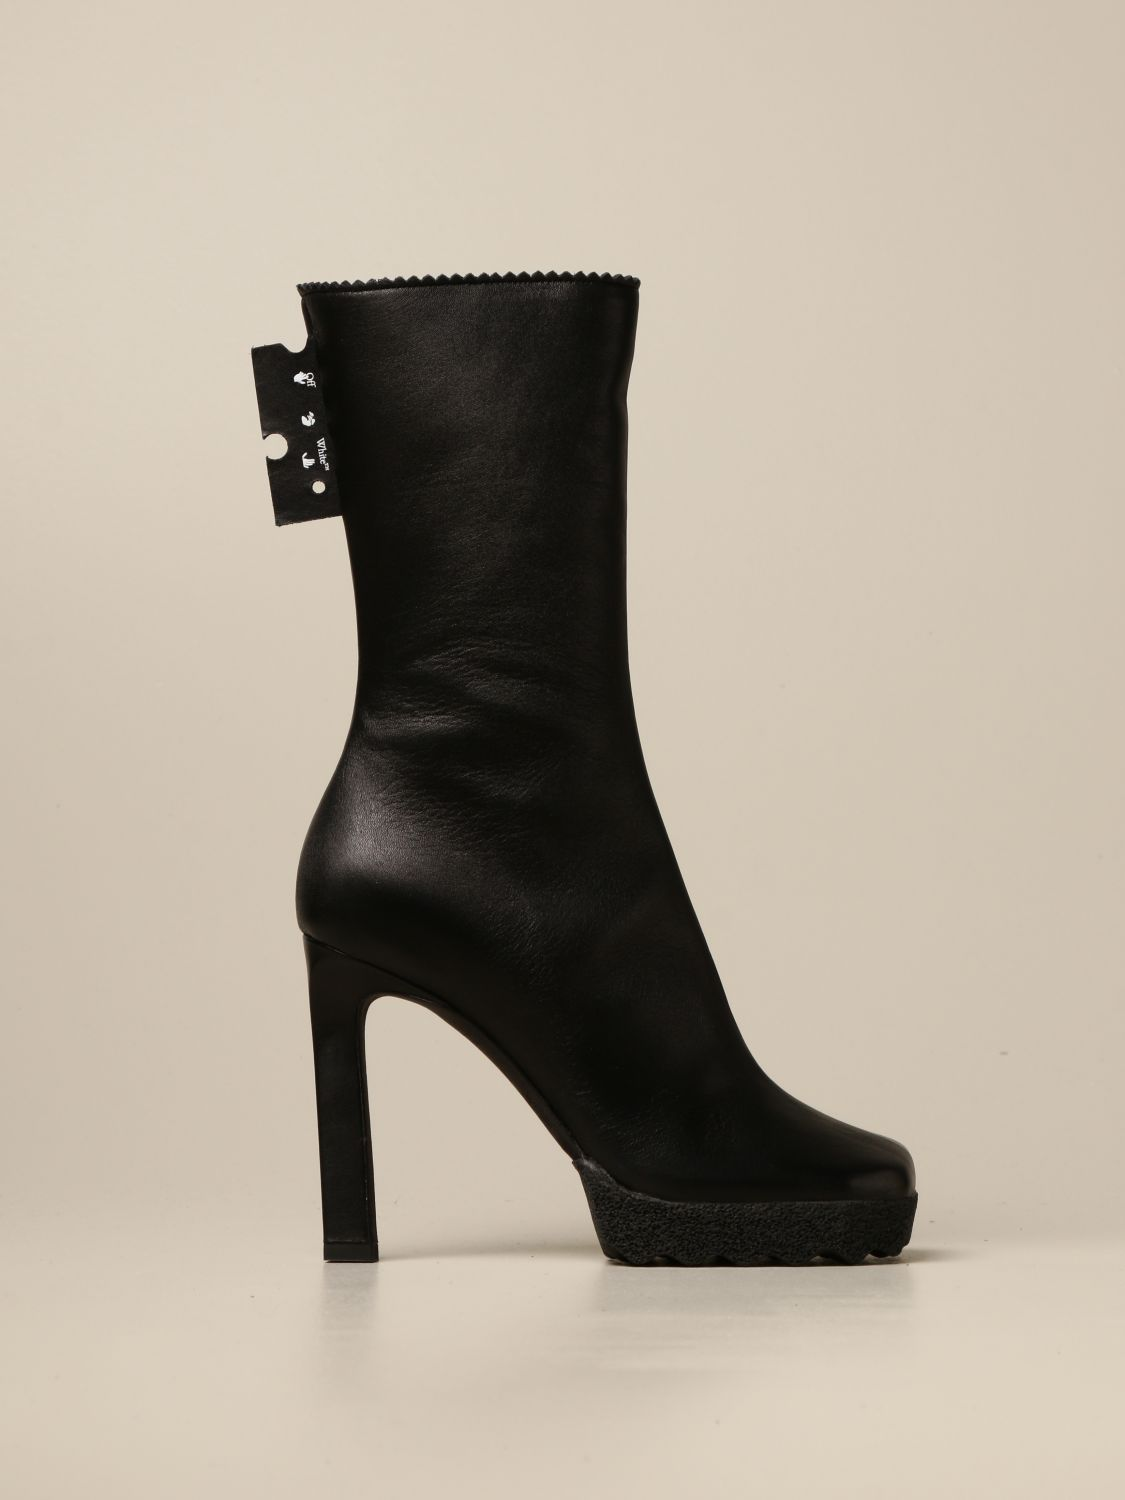 Off White ankle boots in nappa leather